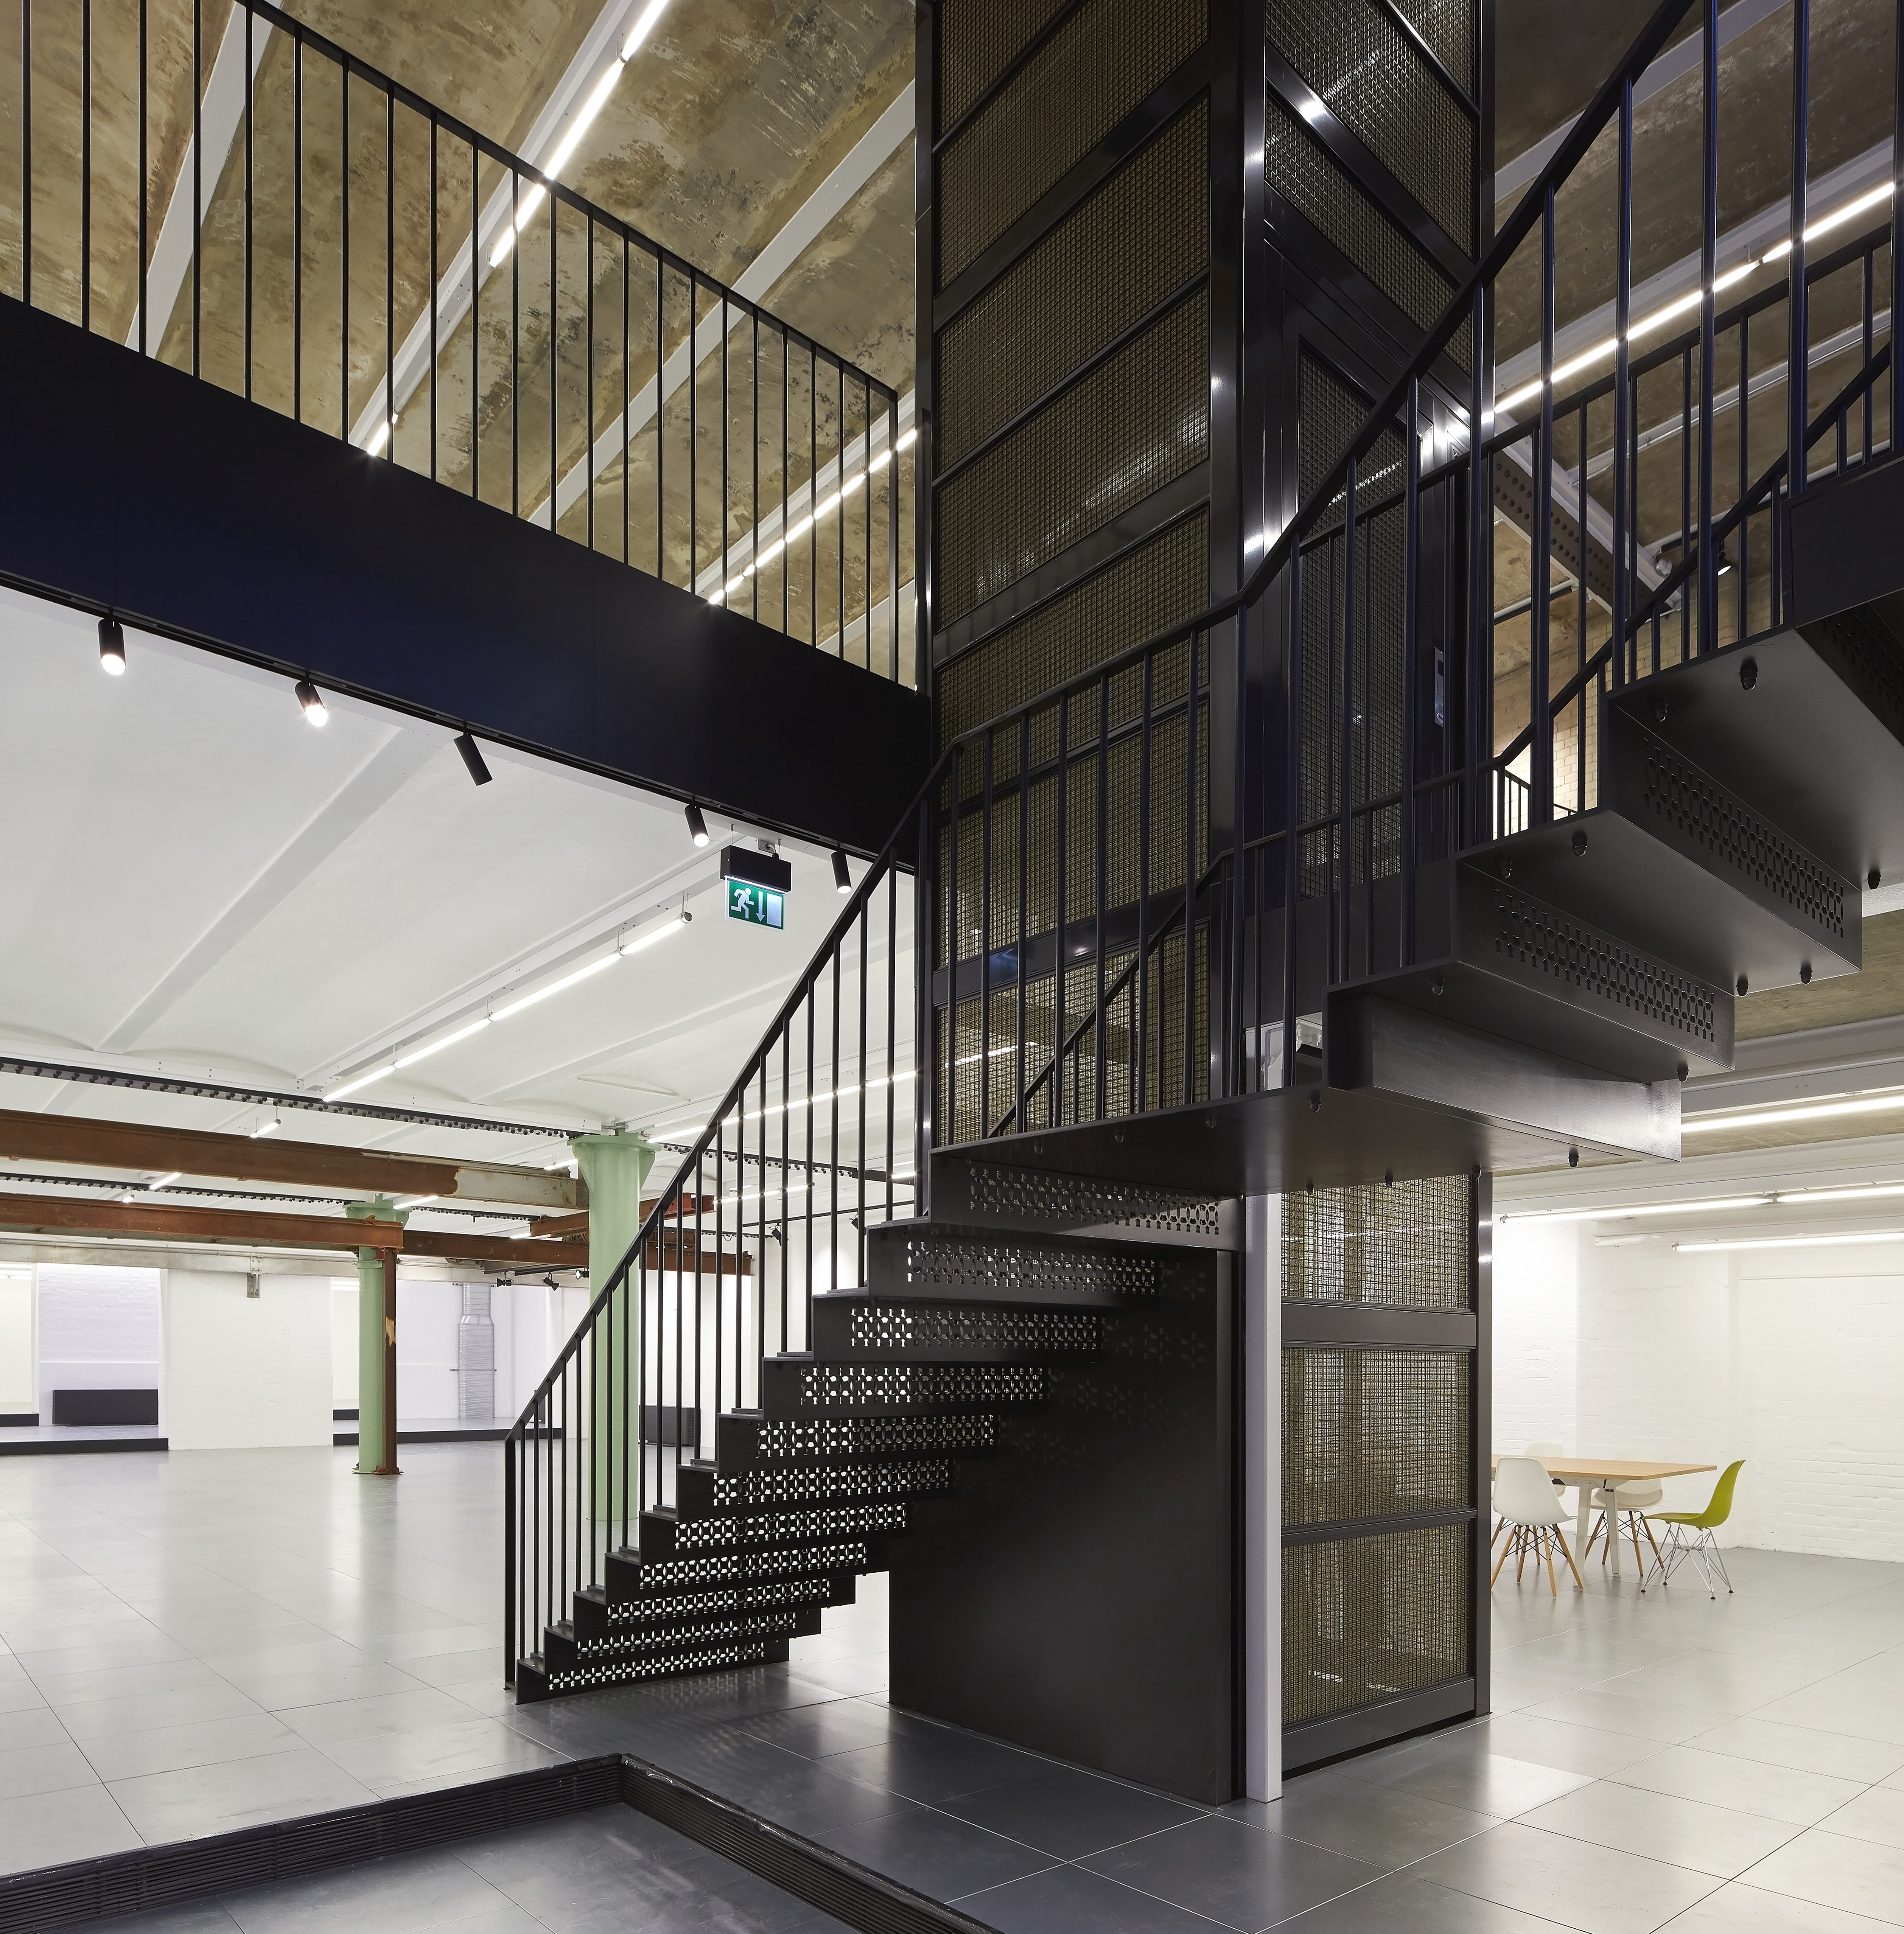 The lift and the surrounding elements of the building create a very industrial look to the space.